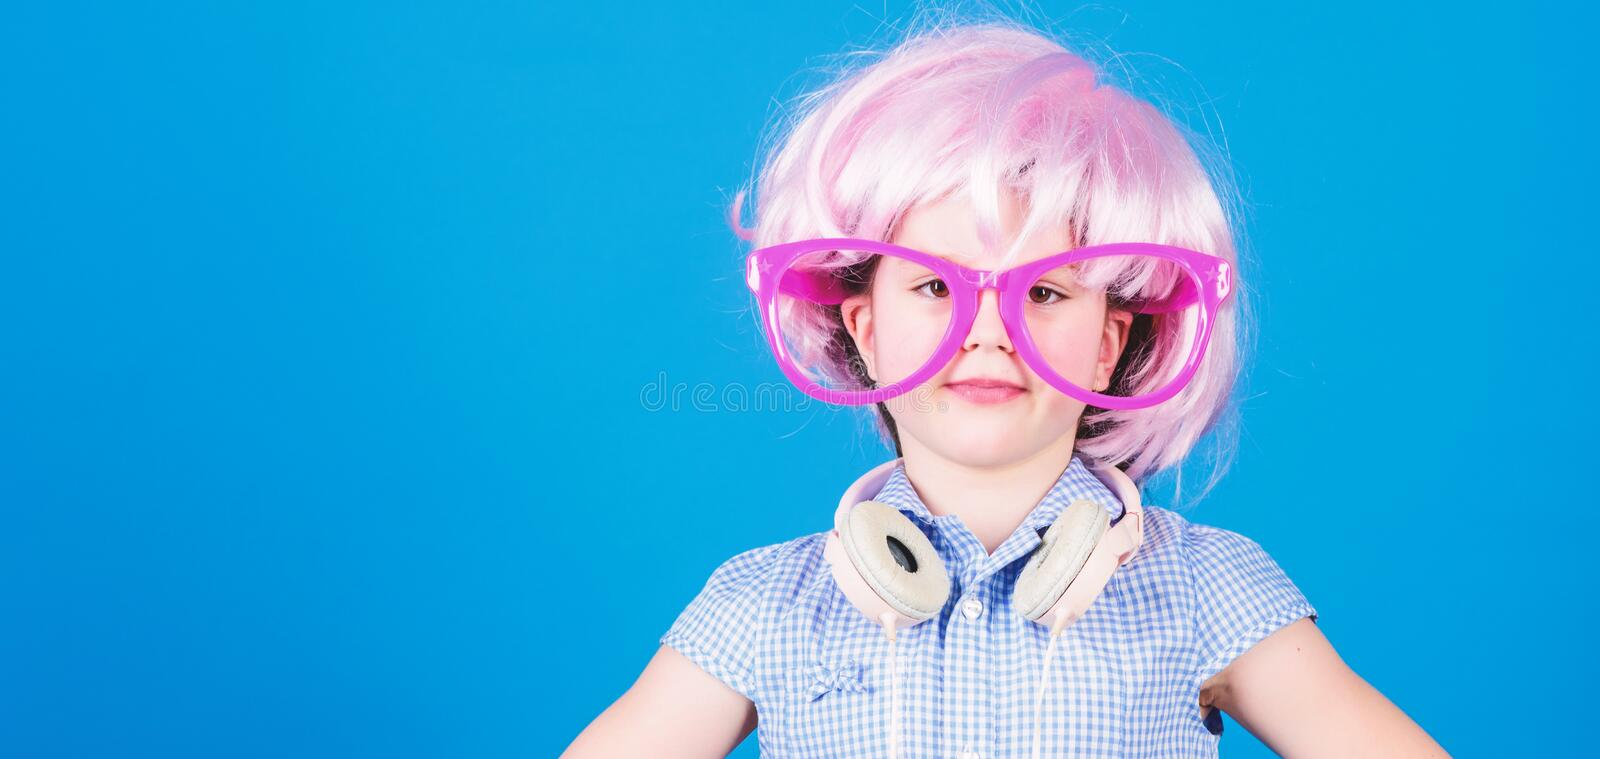 Synthetic hair. Cool little child with pink hair wig. Adorable small girl with fancy hair style wearing headphones stock photography